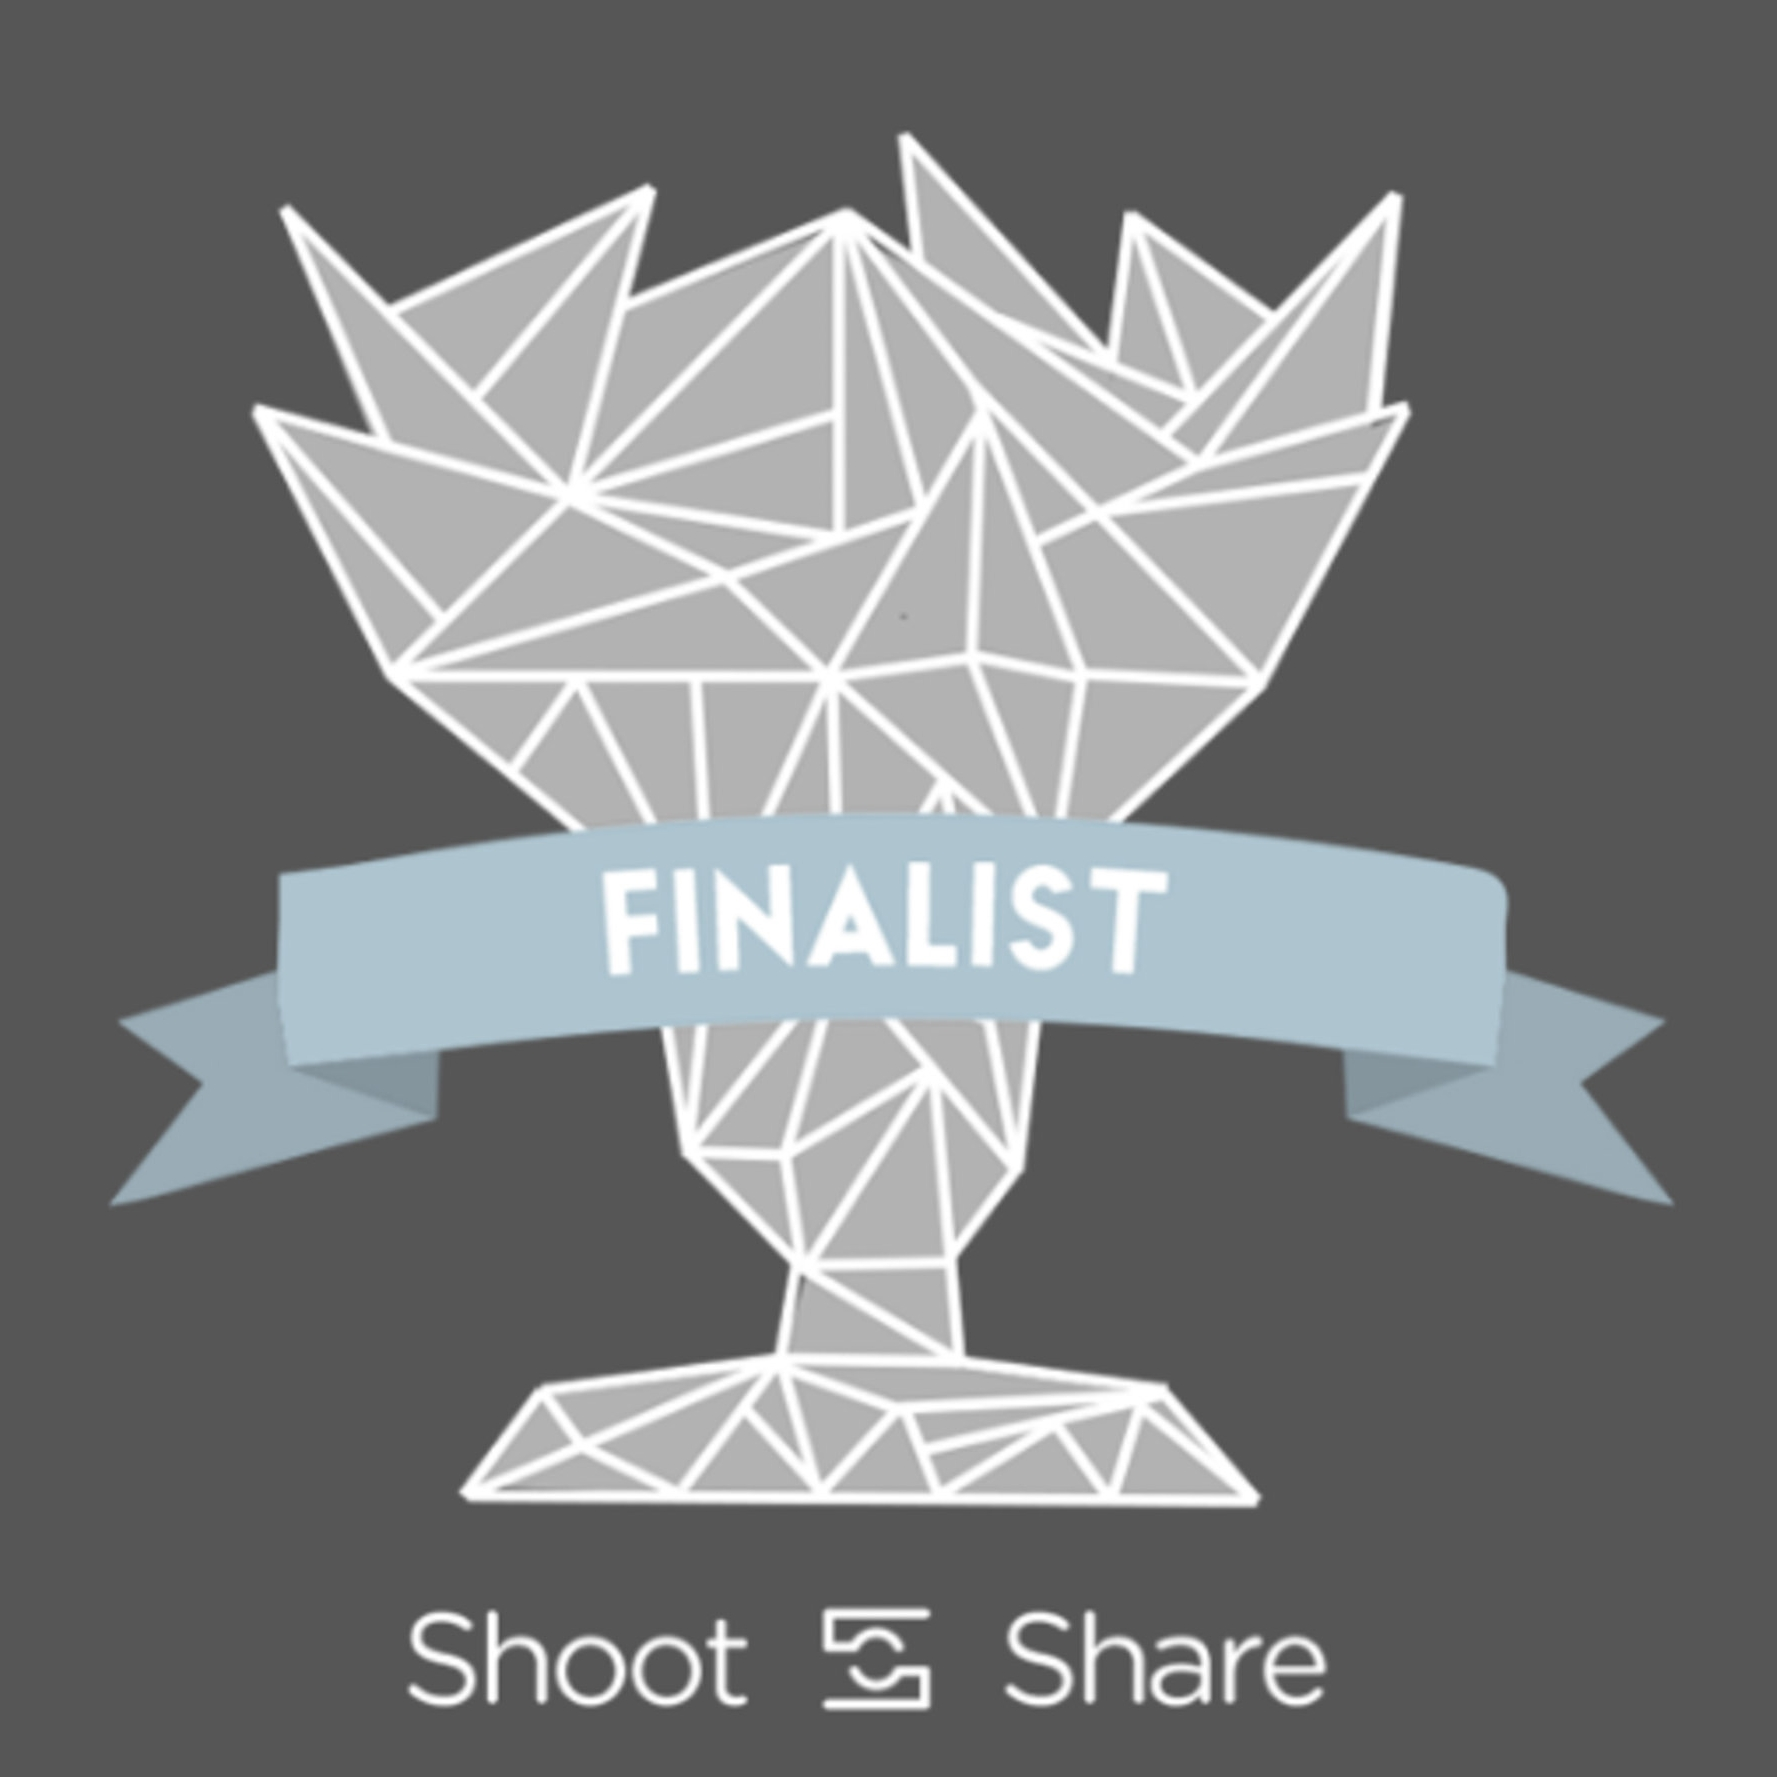 Sophisticated Shoot Share Login Share Pass Shoot Share Finalist Reviews Megan Rei Photography Norrn Virginia Wedding Photographer Shoot dpreview Shoot And Share